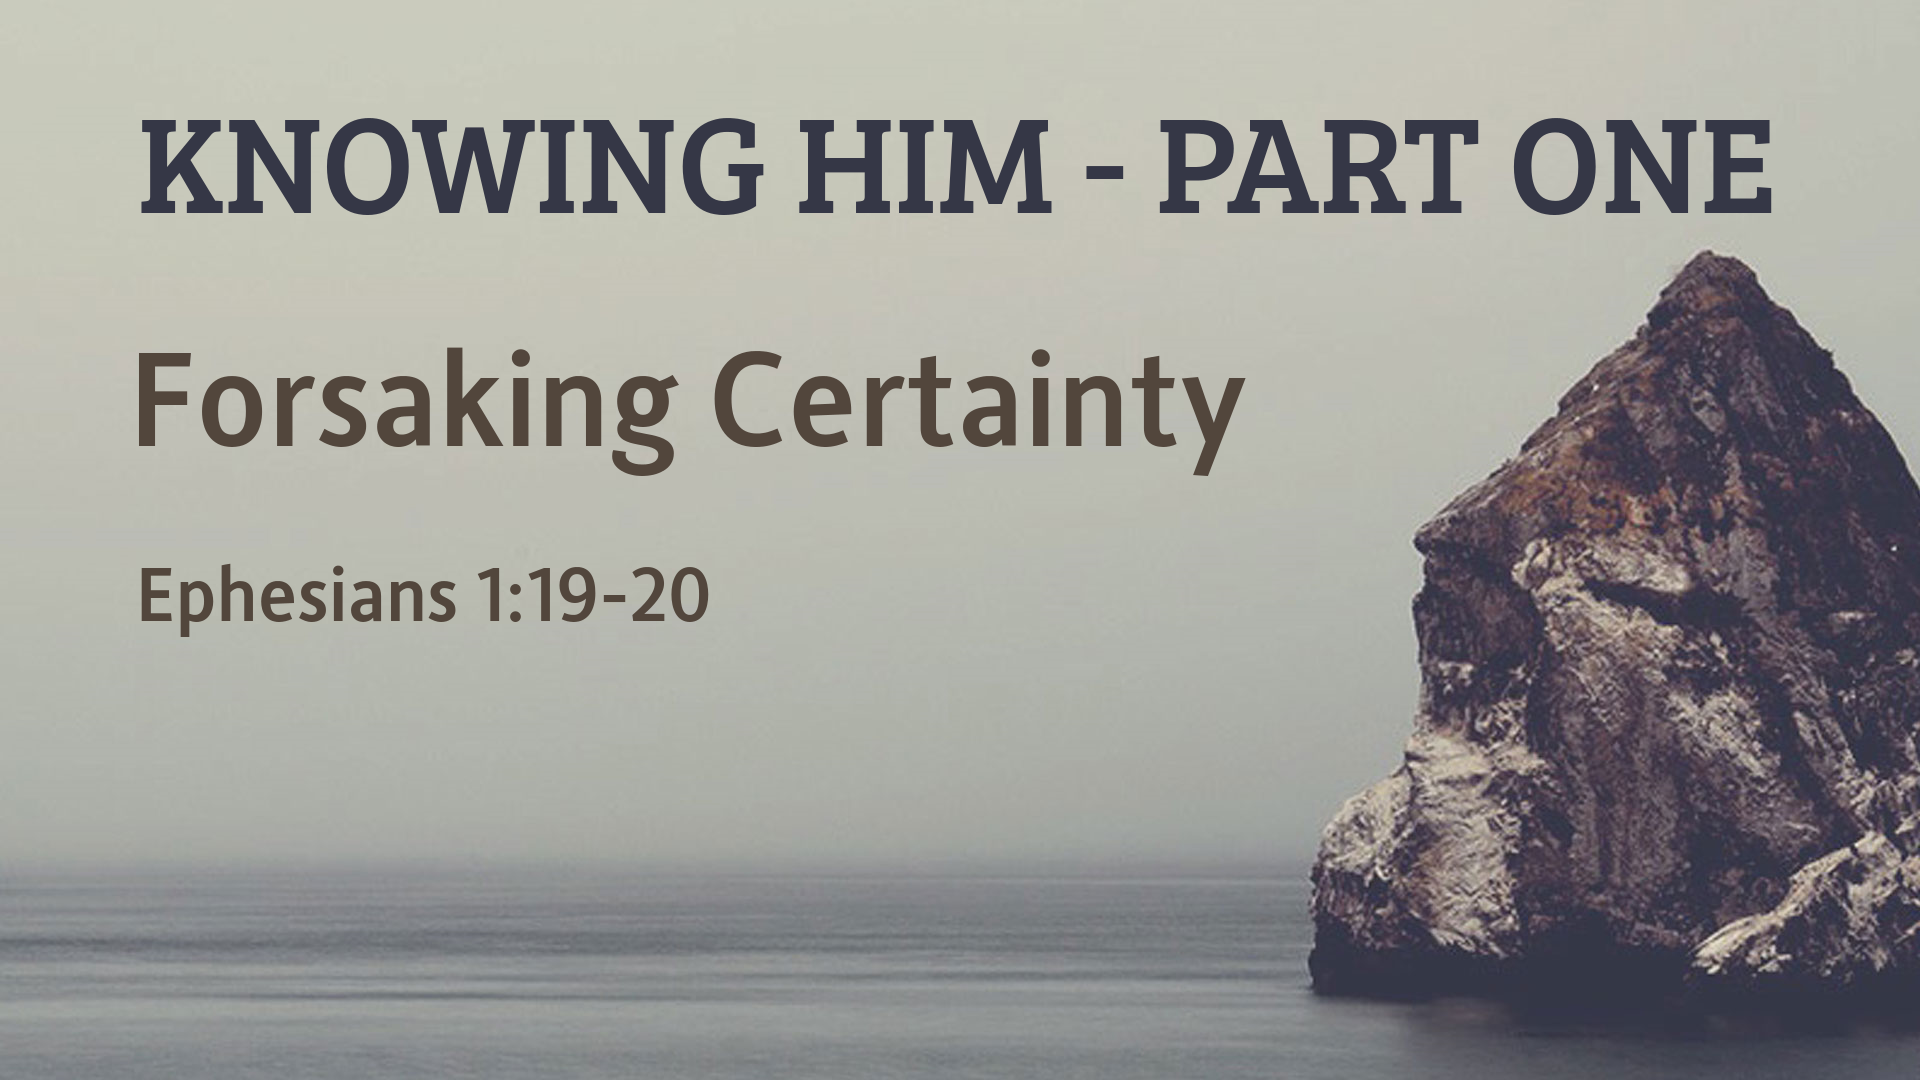 Knowing Him: Forsaking Certainty